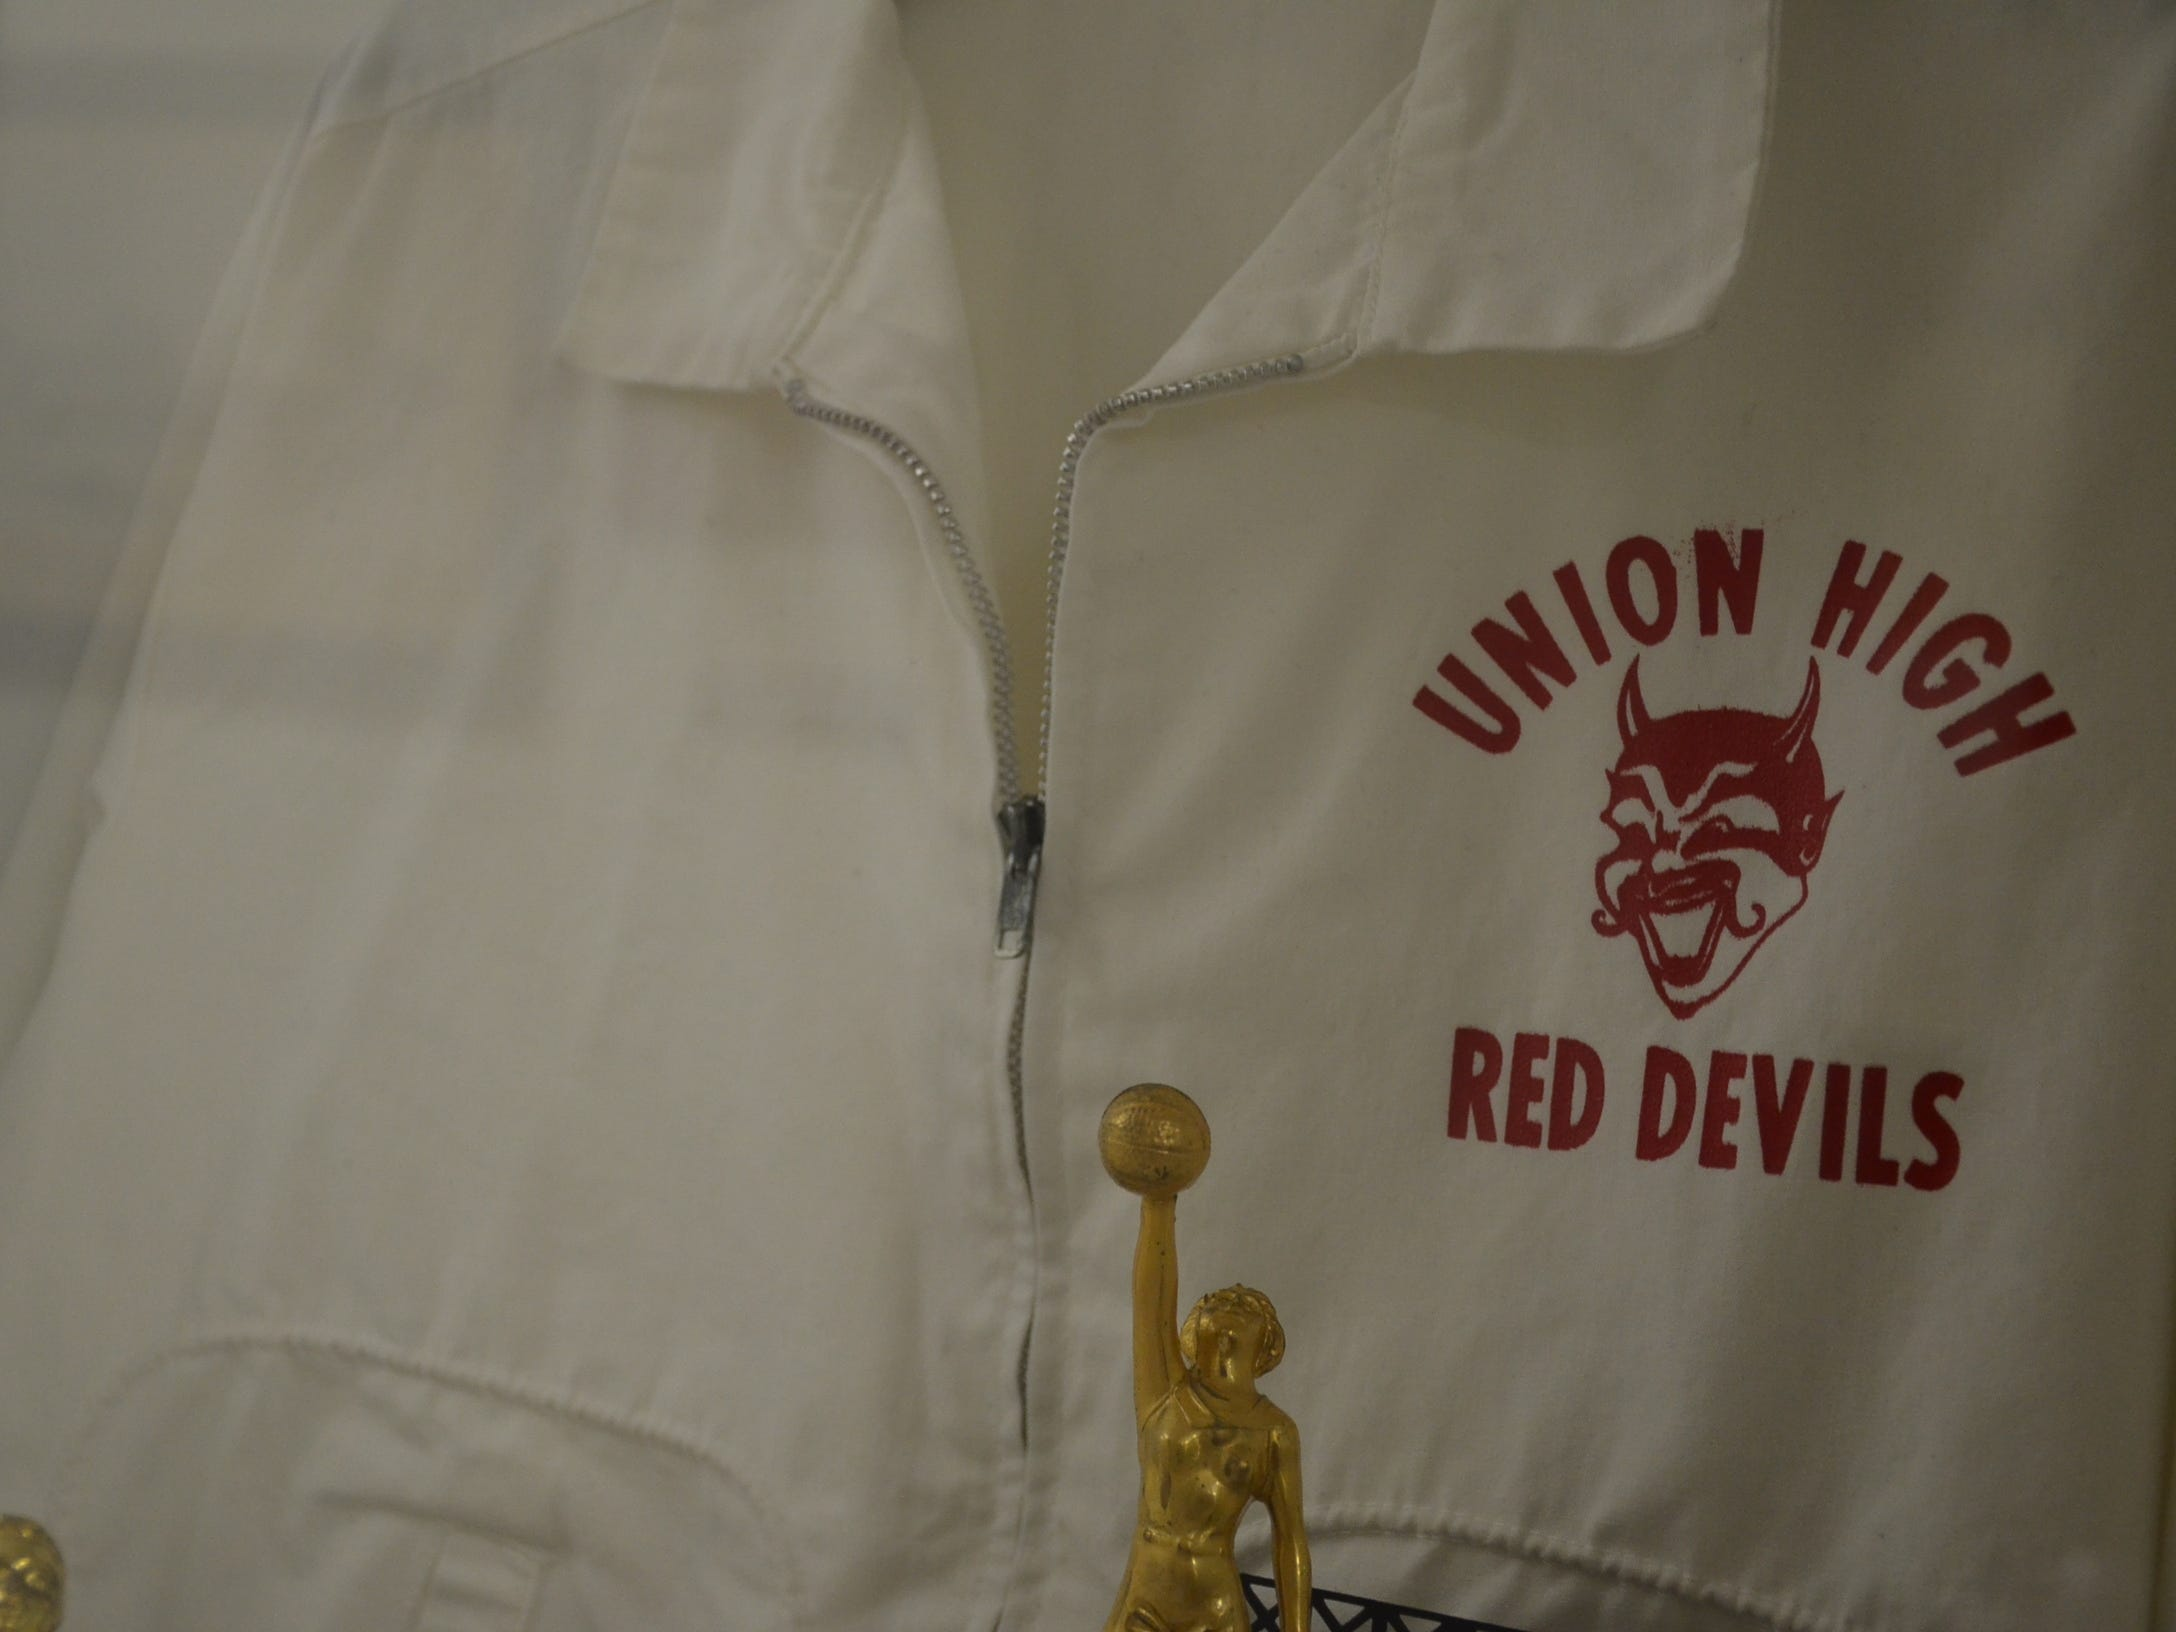 An old shirt with the Union High School Red Devils logo is on display at the school, which is now home to Gallatin Shalom Zone and other nonprofits.